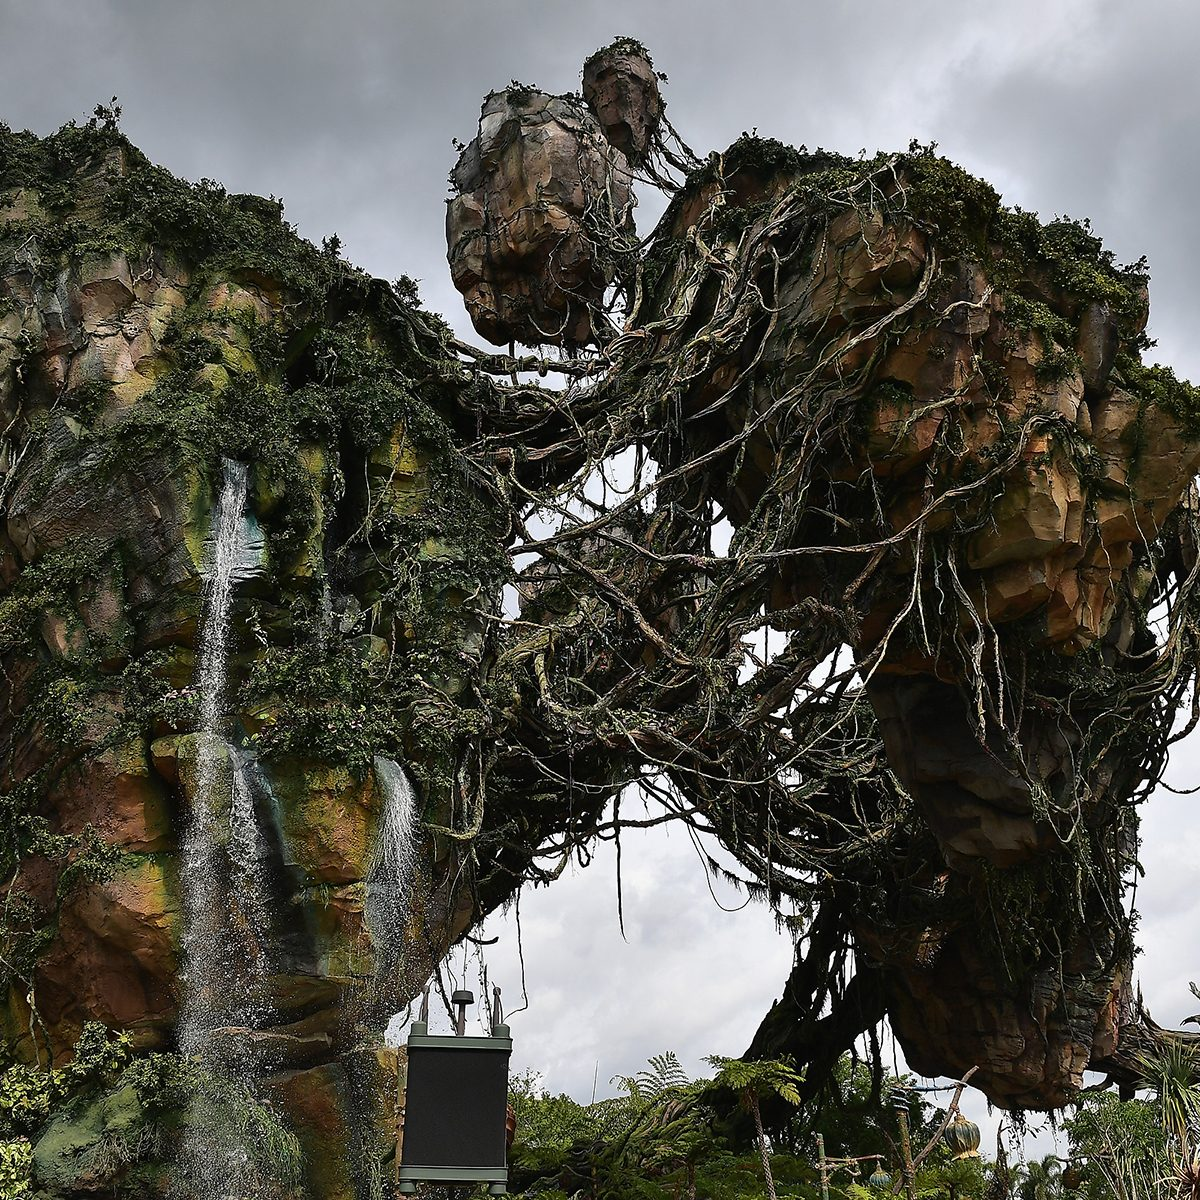 ORLANDO, FL - MAY 23: General views the Pandora The World Of Avatar Dedication at the Disney Animal Kingdom on May 23, 2017 in Orlando, Florida. (Photo by Gustavo Caballero/Getty Images)